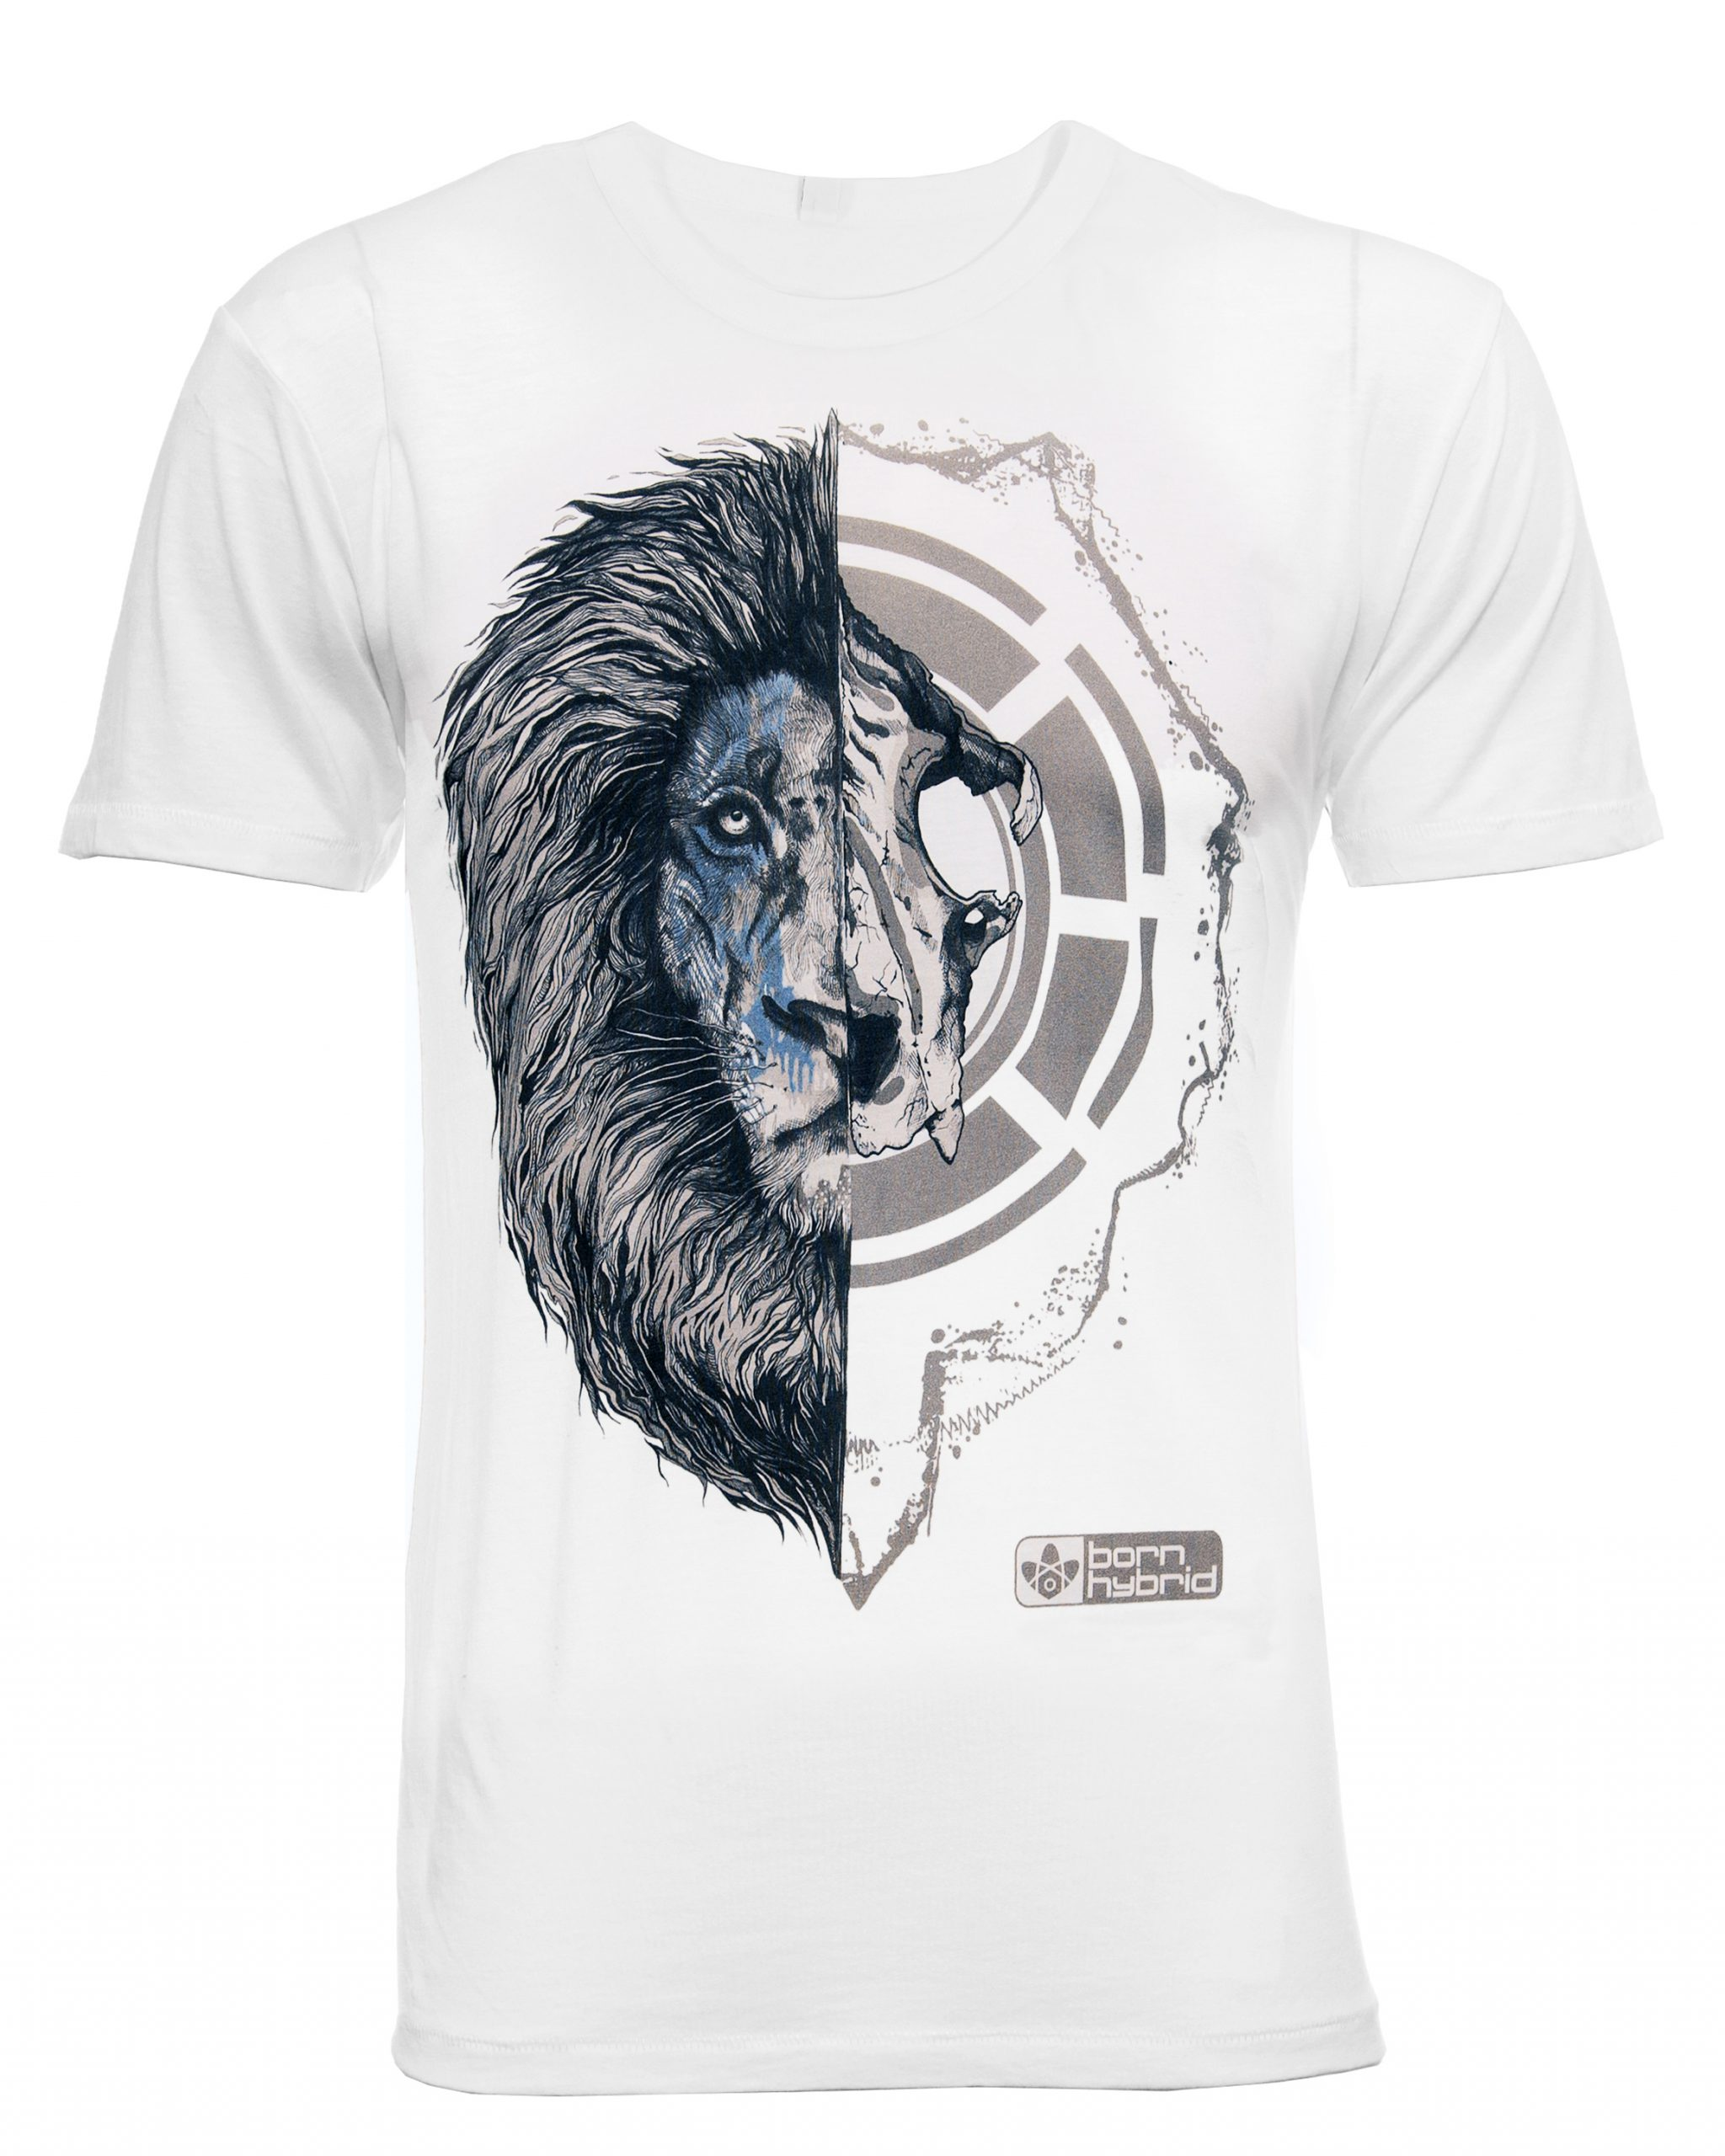 African lion graphic T-shirt - half lion face, half lion skull. White Graphic Tee In Organic Combed Cotton